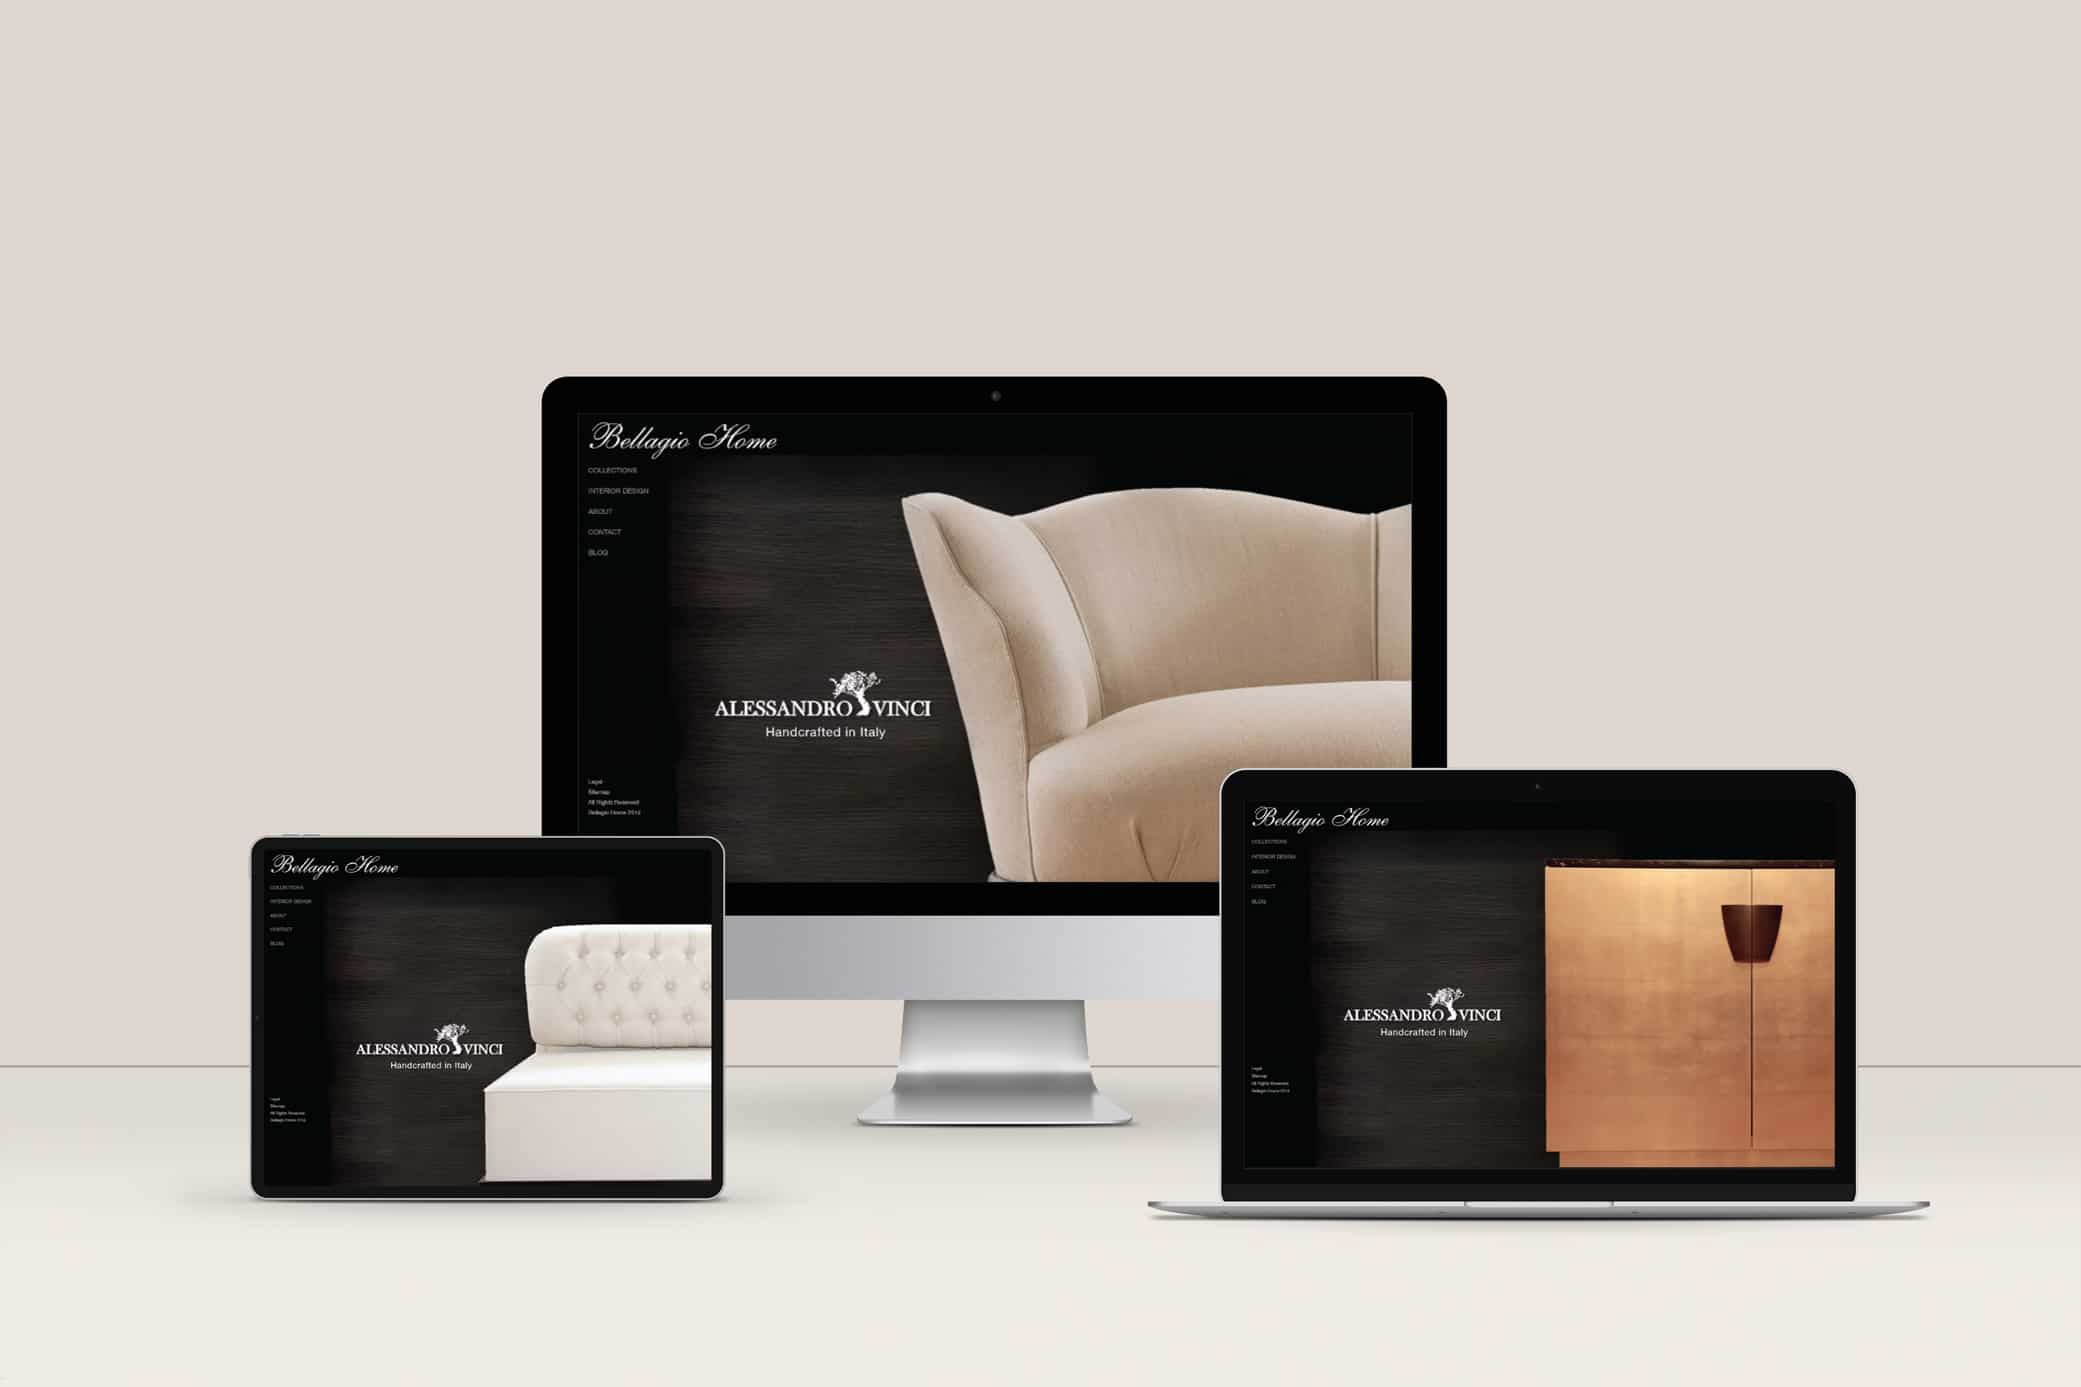 Bellagio Home website design featuring three different views of home page.